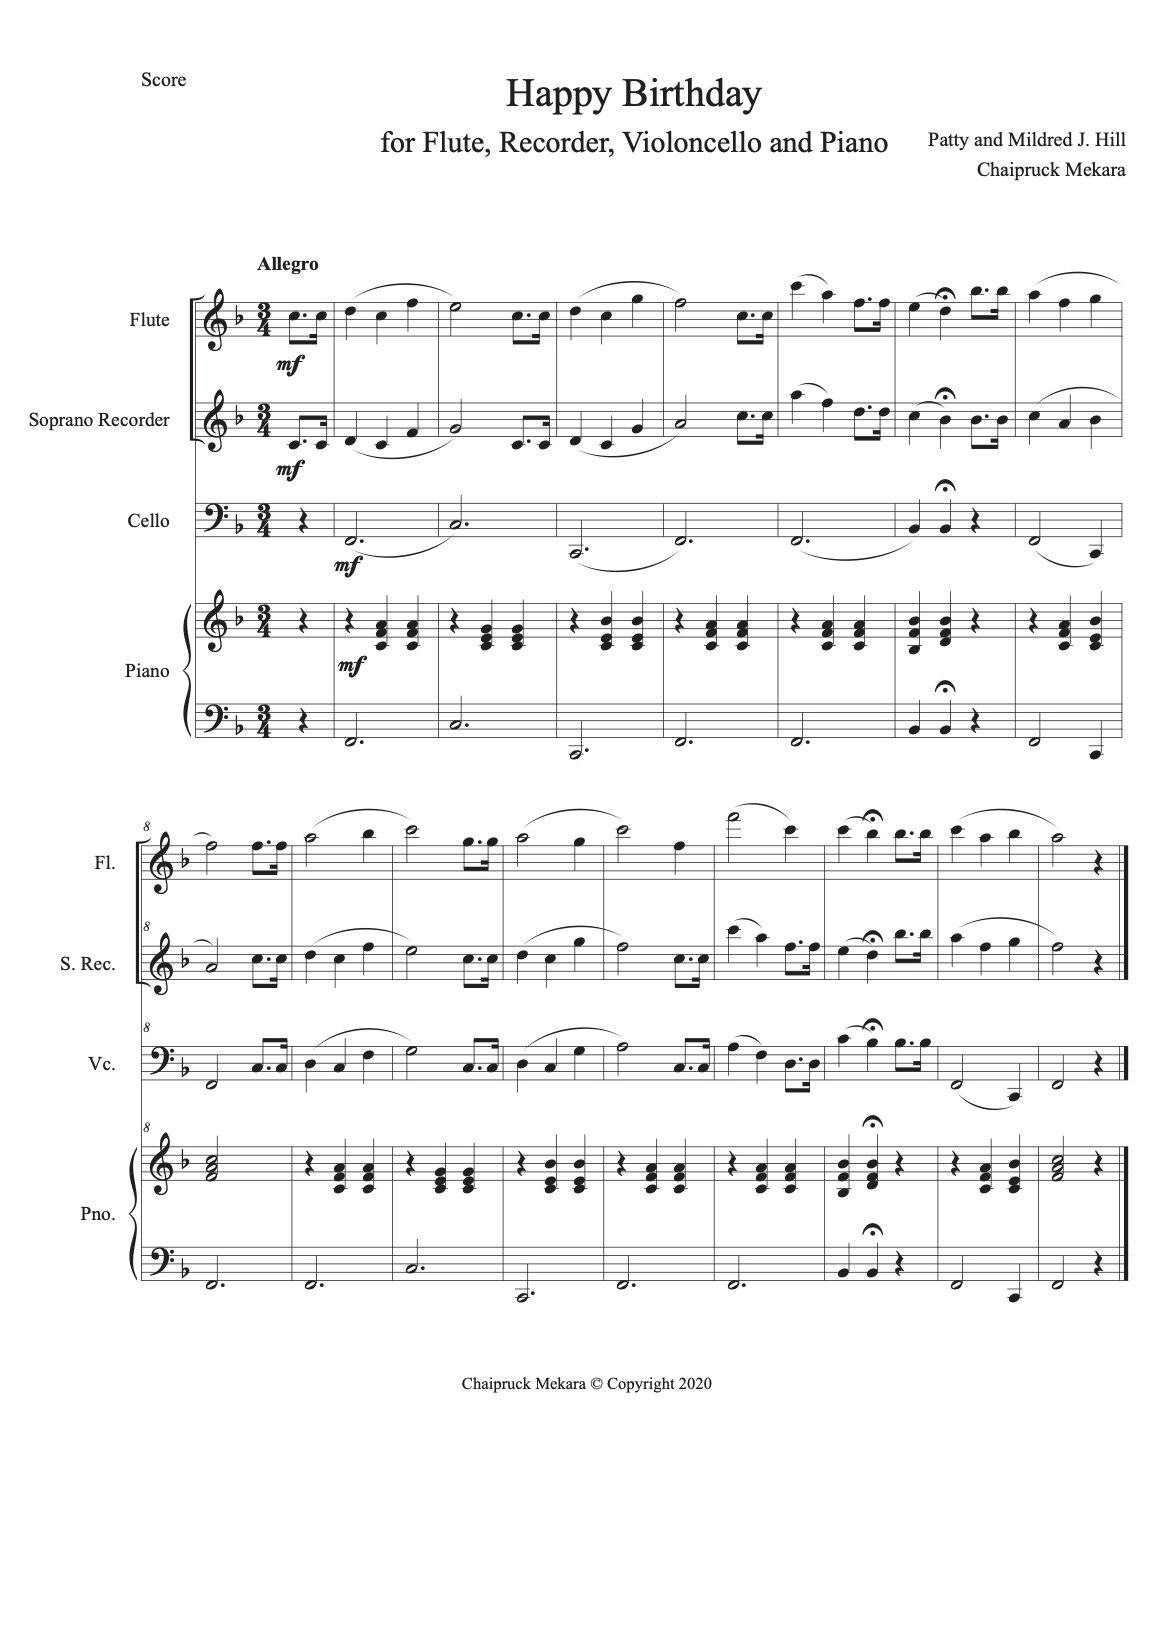 Happy Birthday to You - arrangement Flute, Recorder, Violoncello and Piano (score+part) - ChaipruckMekara